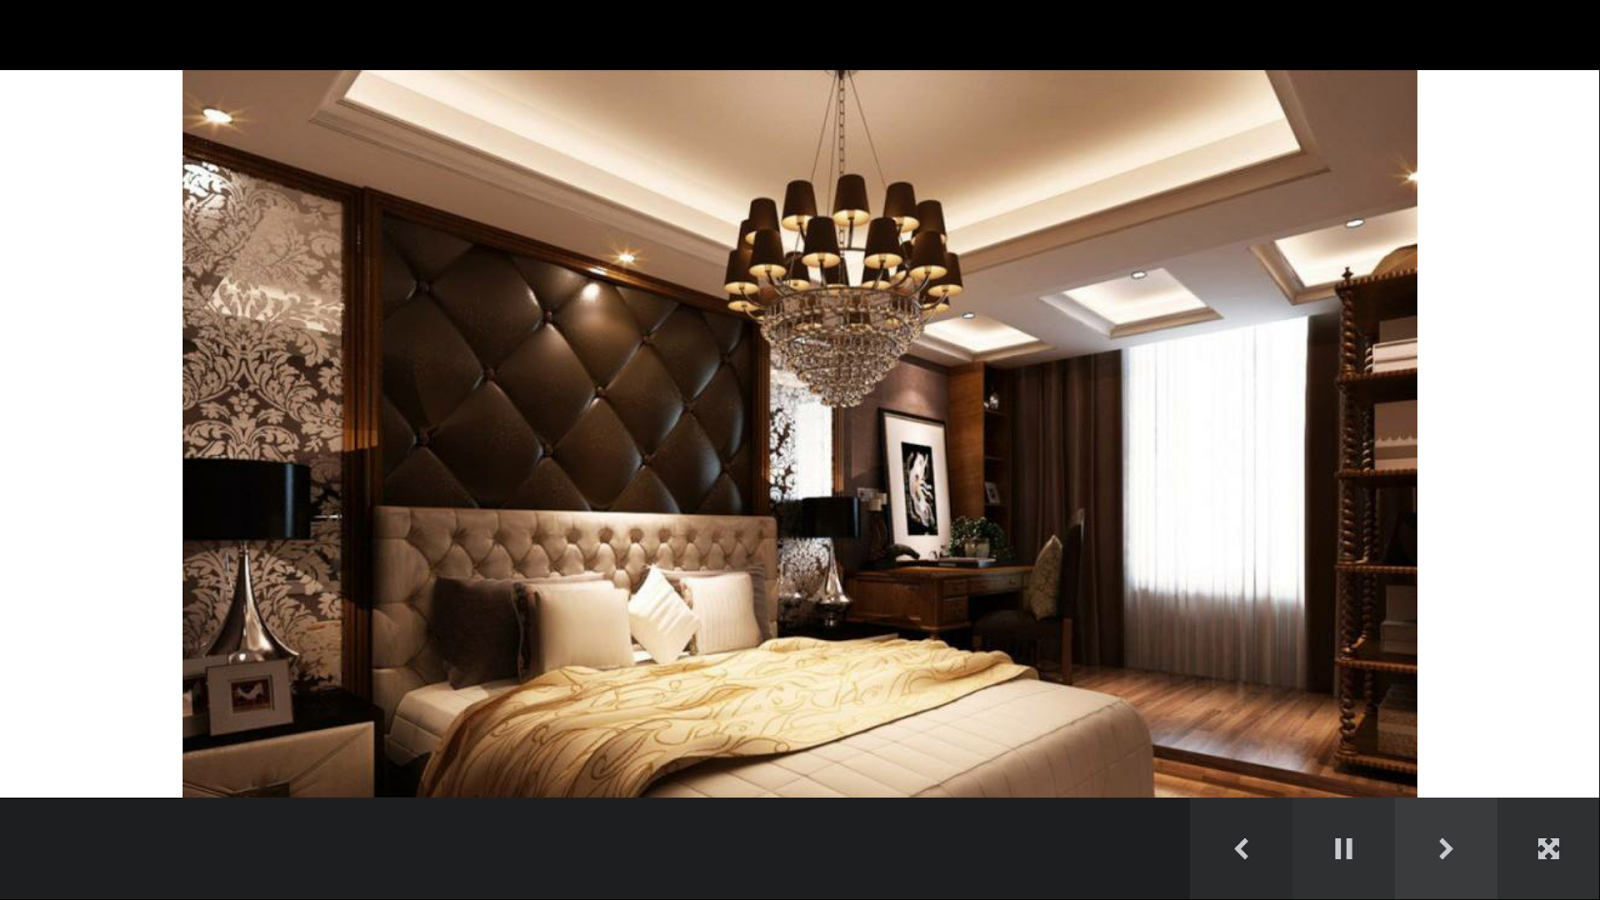 Bedroom decor ideas android apps on google play for Bedroom interior designs gallery